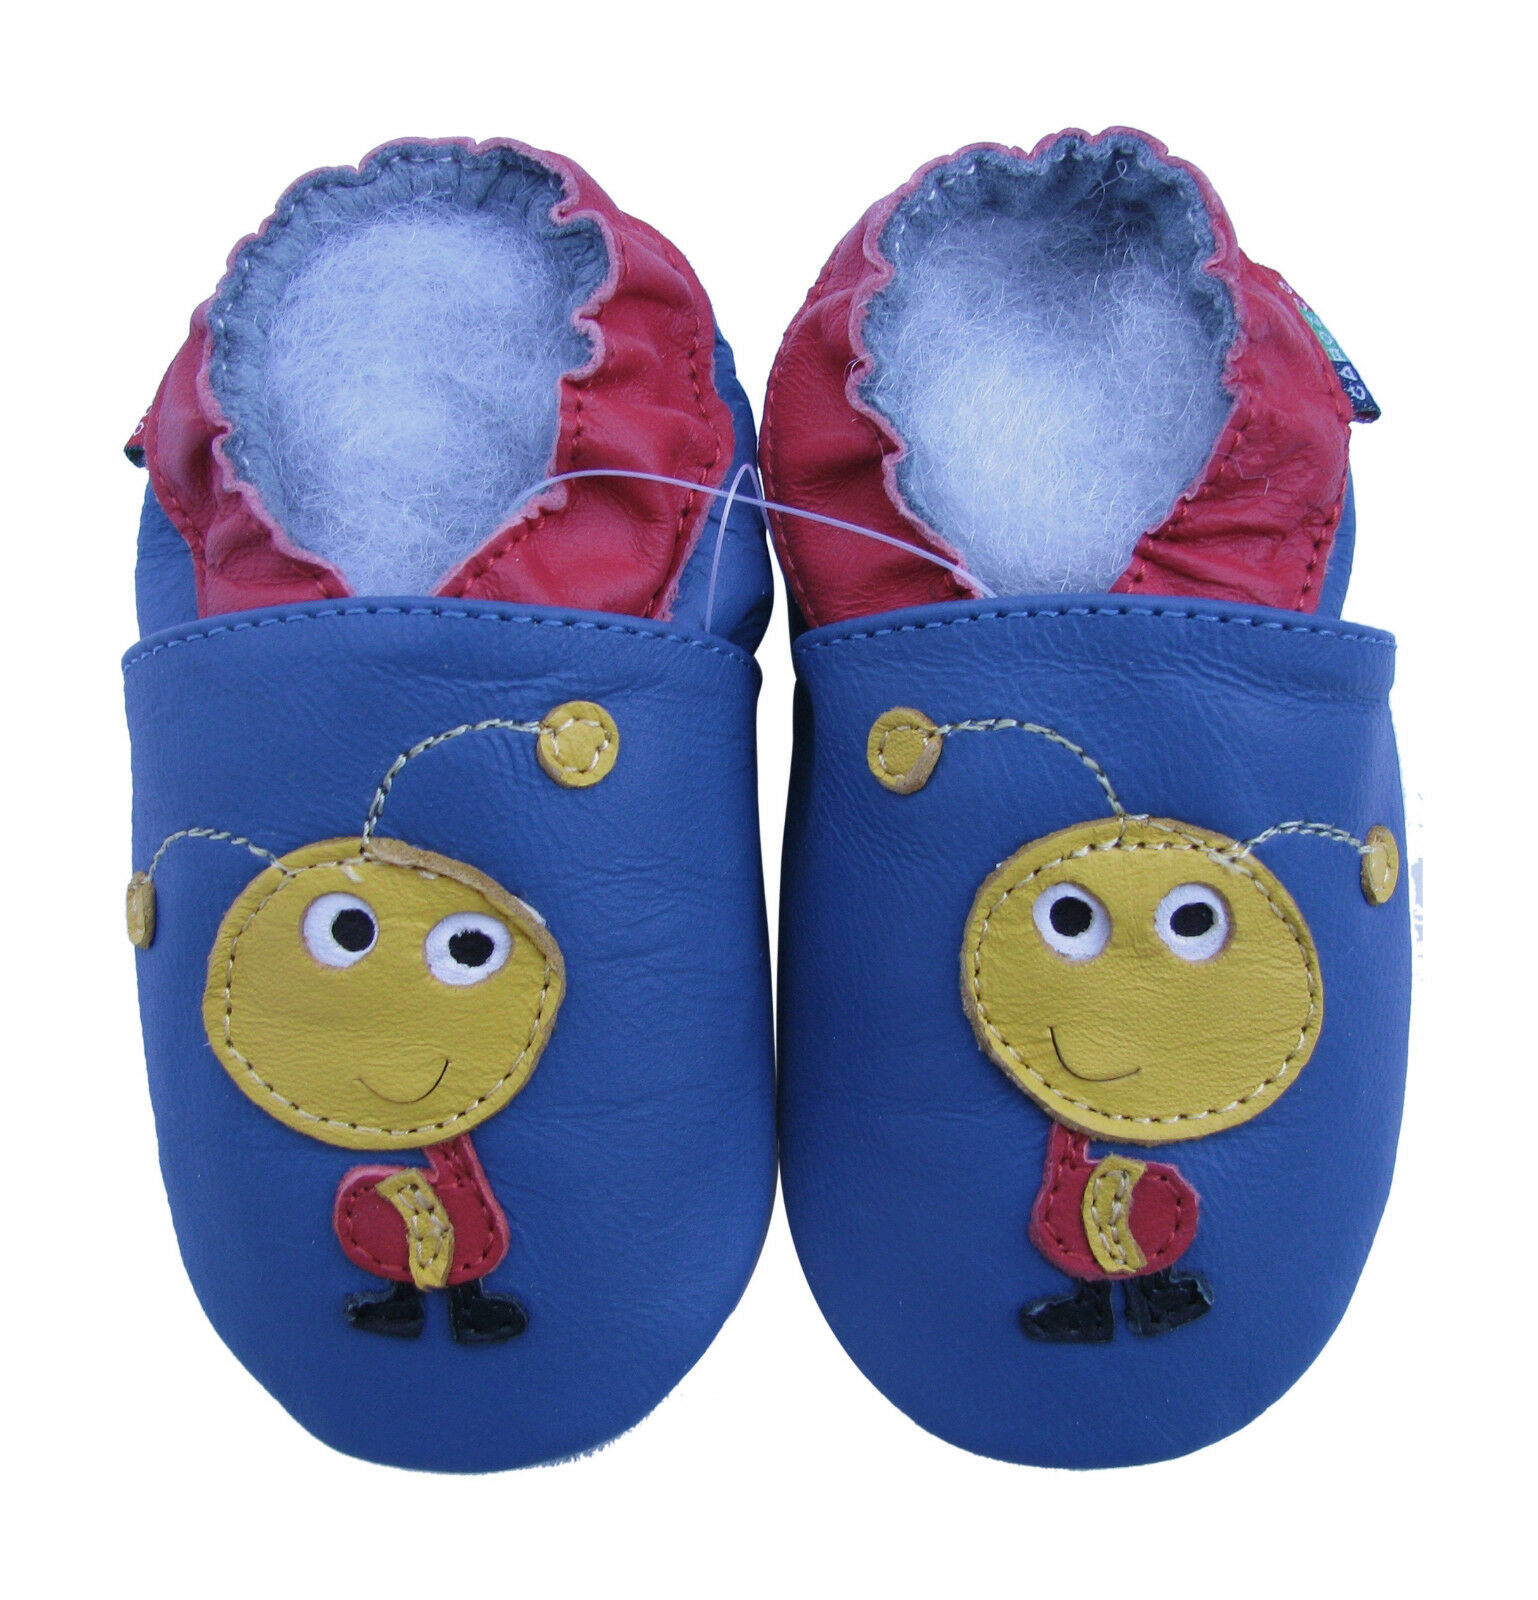 Shoeszoo Soft Sole Leather Baby Shoes ANT Blue 6 12m S